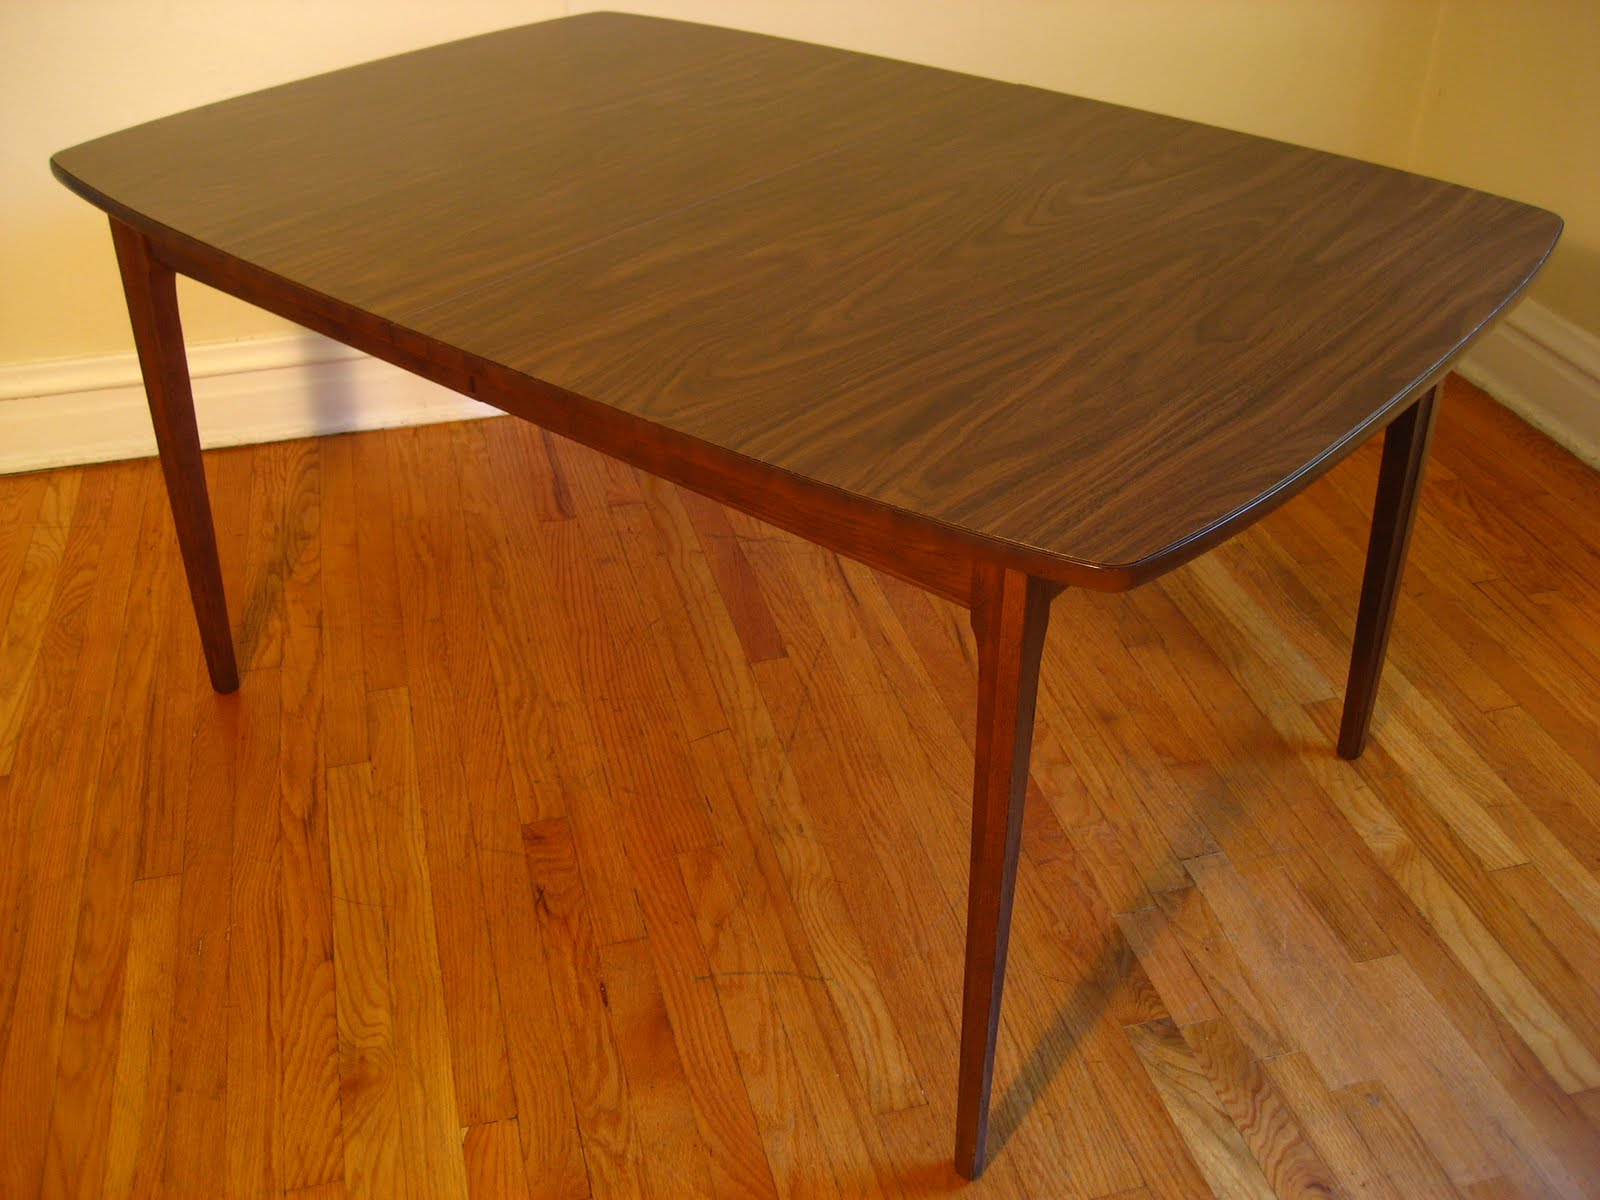 mcm dining table laminate kitchen table mcm dining table dark walnut formica top - Formica Kitchen Table